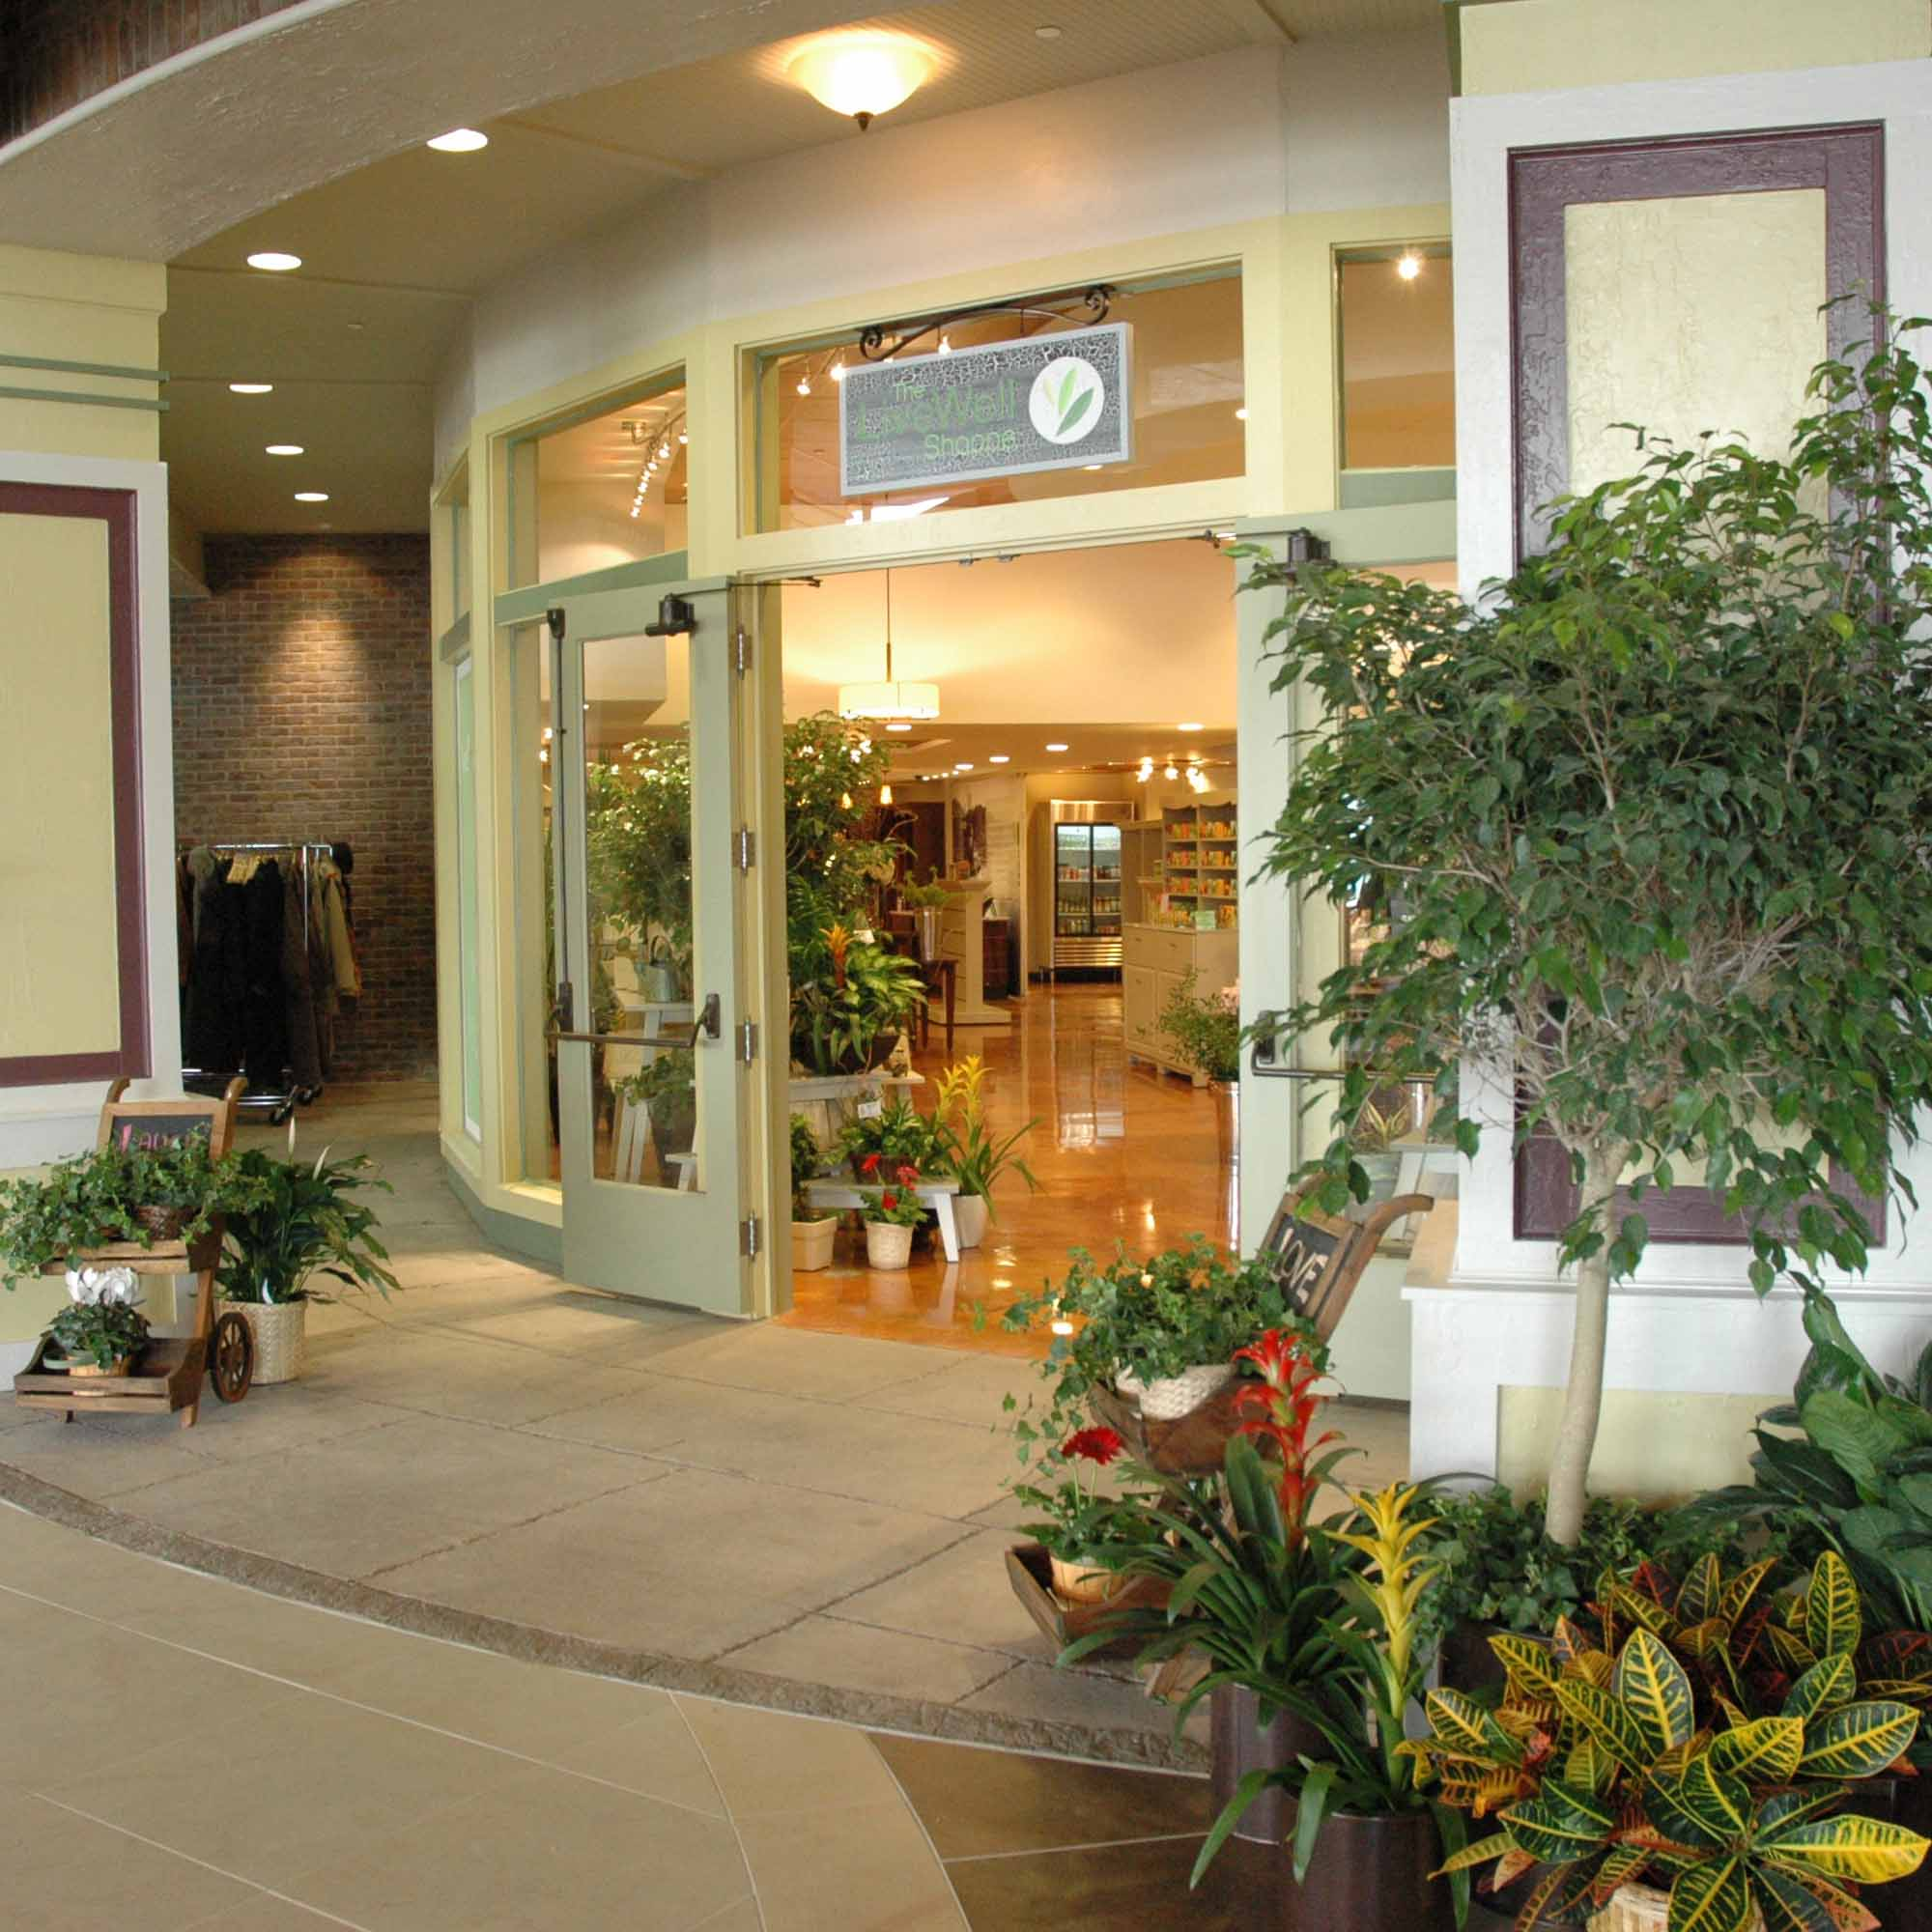 Retail Store Entrance with Main Street Appeal